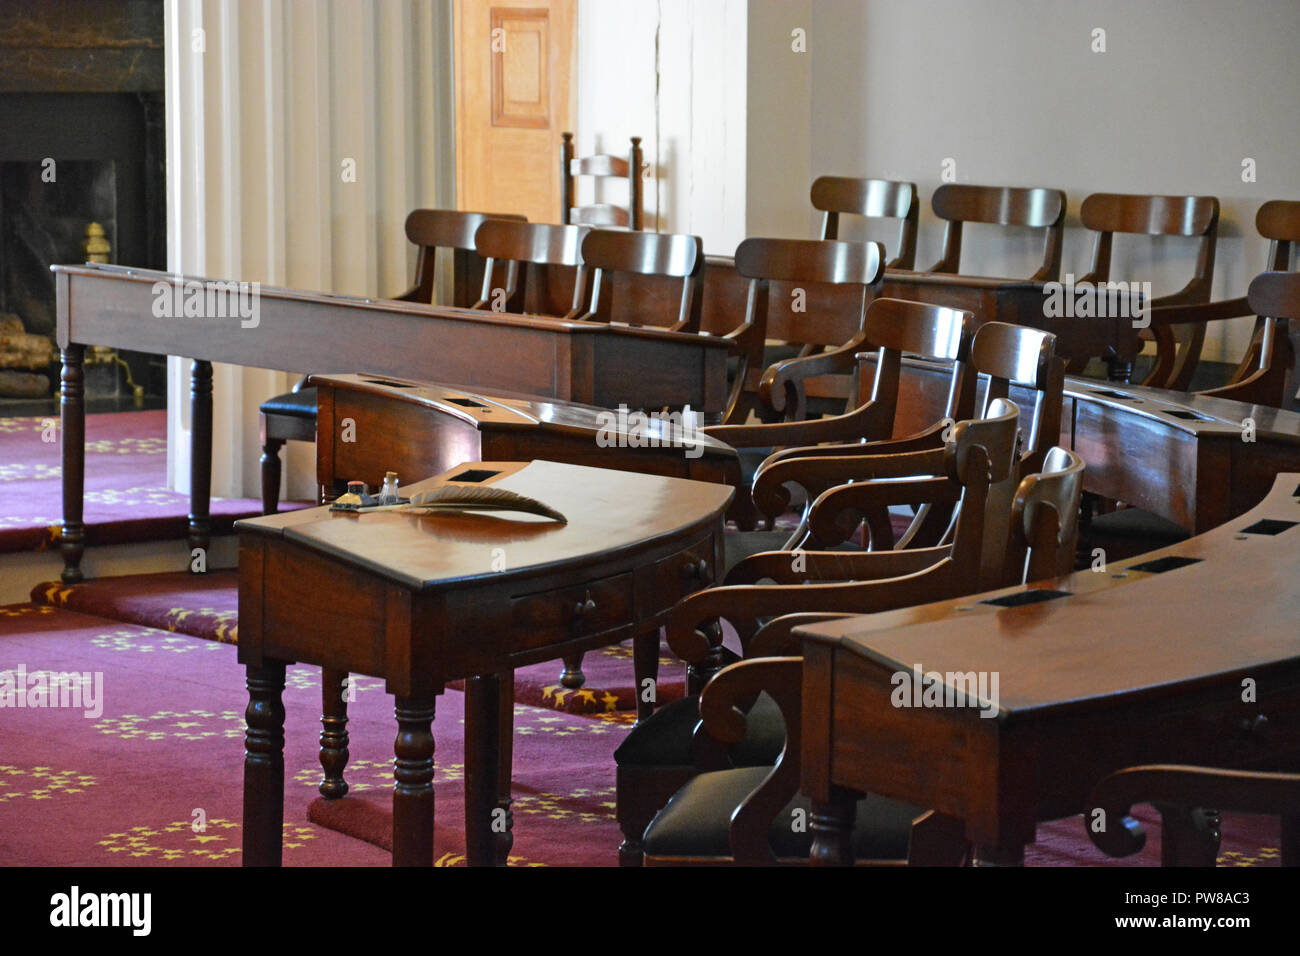 Inside the former House of Representatives Chamber at the North Carolina state capitol building in Raleigh. - Stock Image